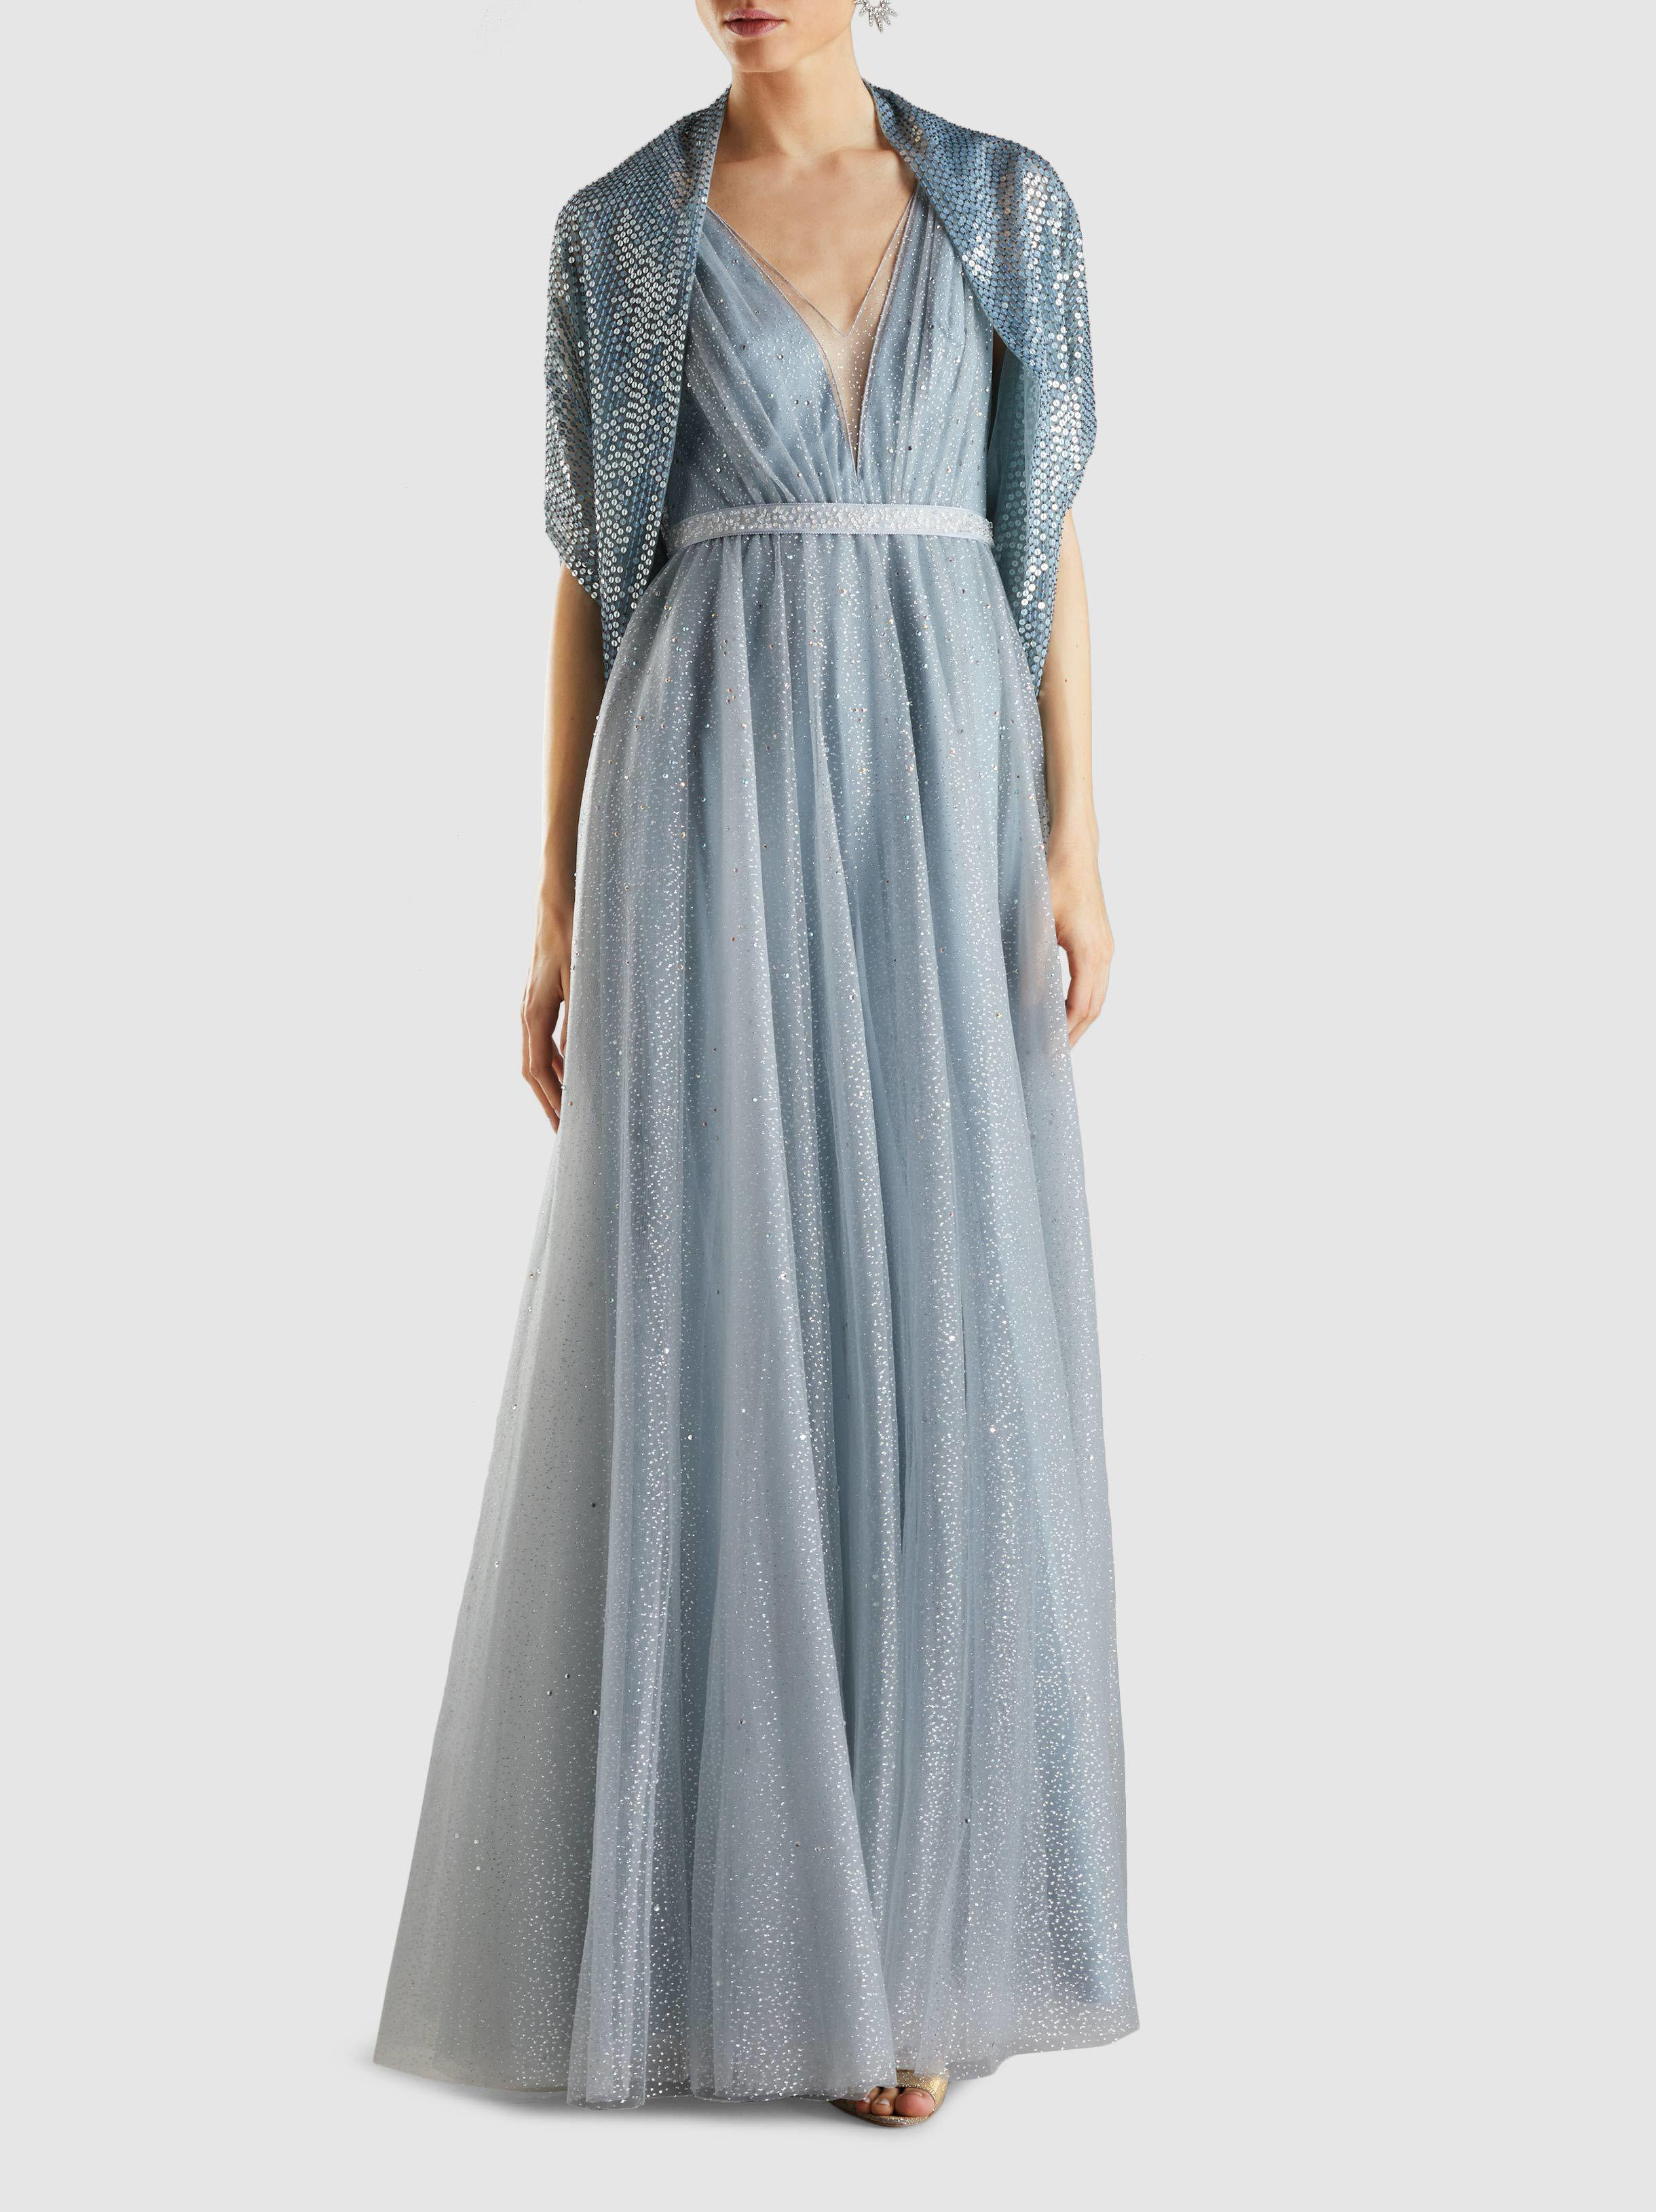 Skye Crystal-Embellished Tulle Gown Jenny Packham Fast Express Fake Online Footlocker Finishline Cheap Online Discounts Online Outlet 2018 Wveu9Uuo